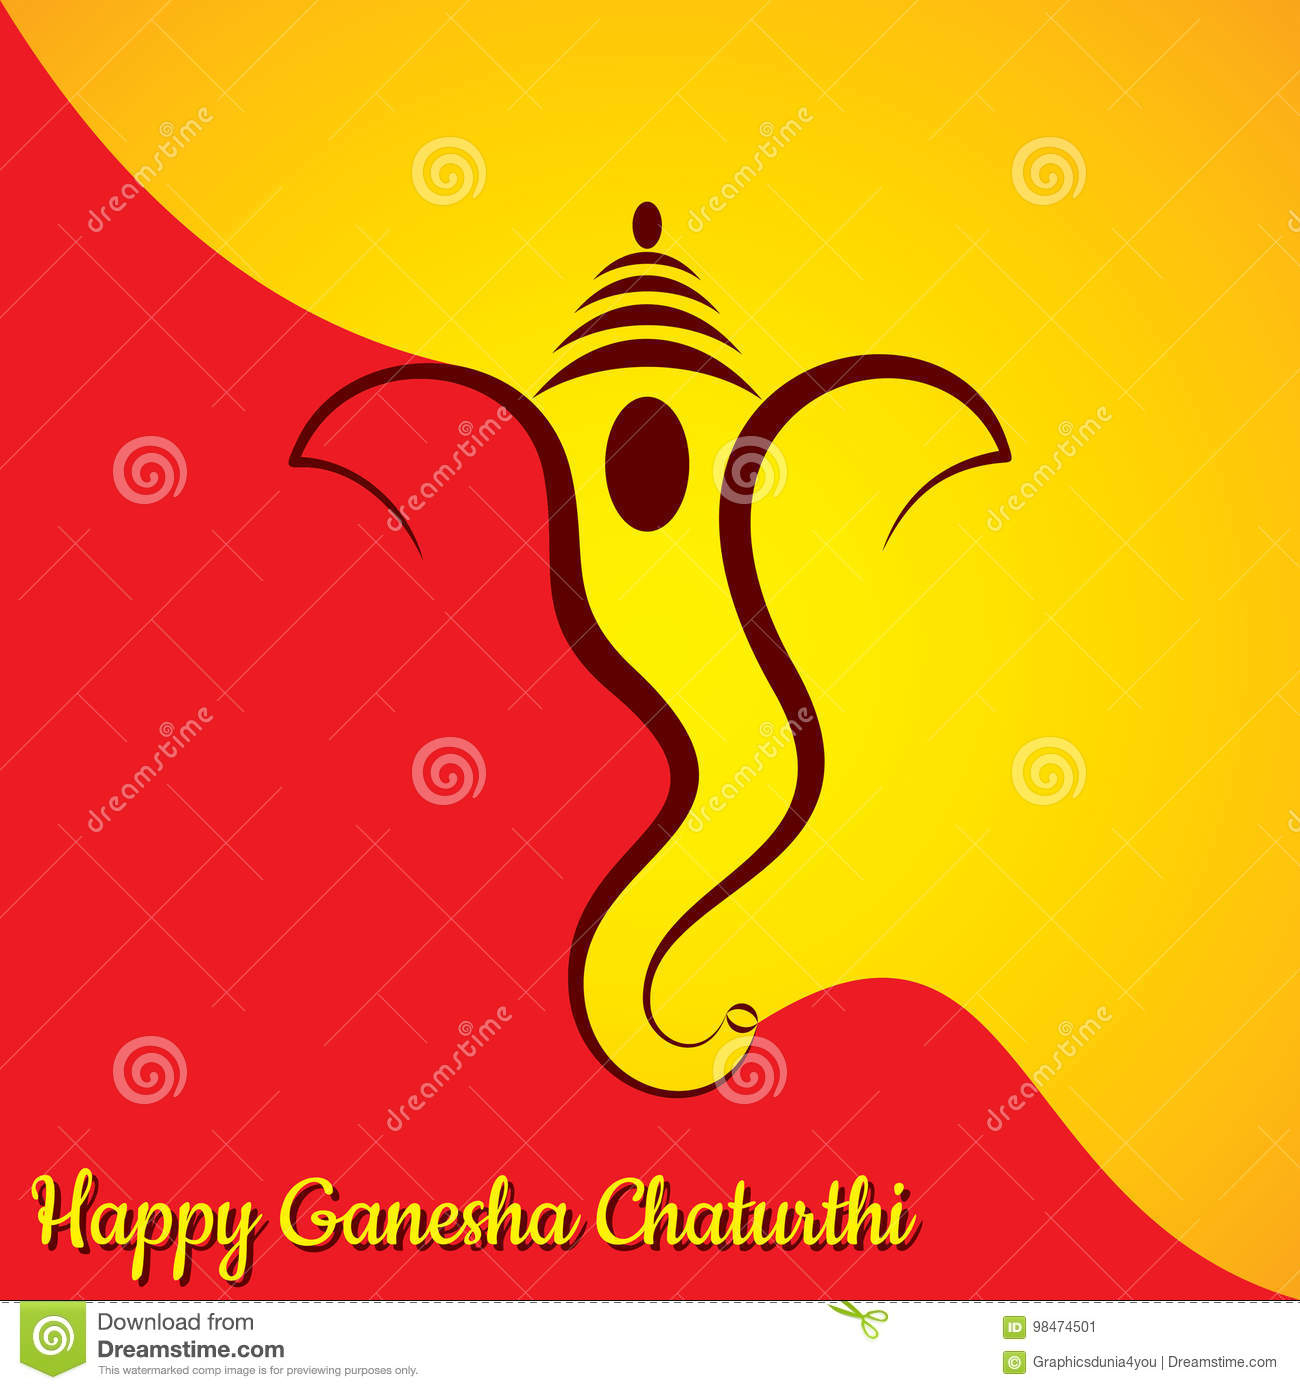 Ganesh chaturthi greeting card stock vector illustration of hindu download ganesh chaturthi greeting card stock vector illustration of hindu asian 98474501 m4hsunfo